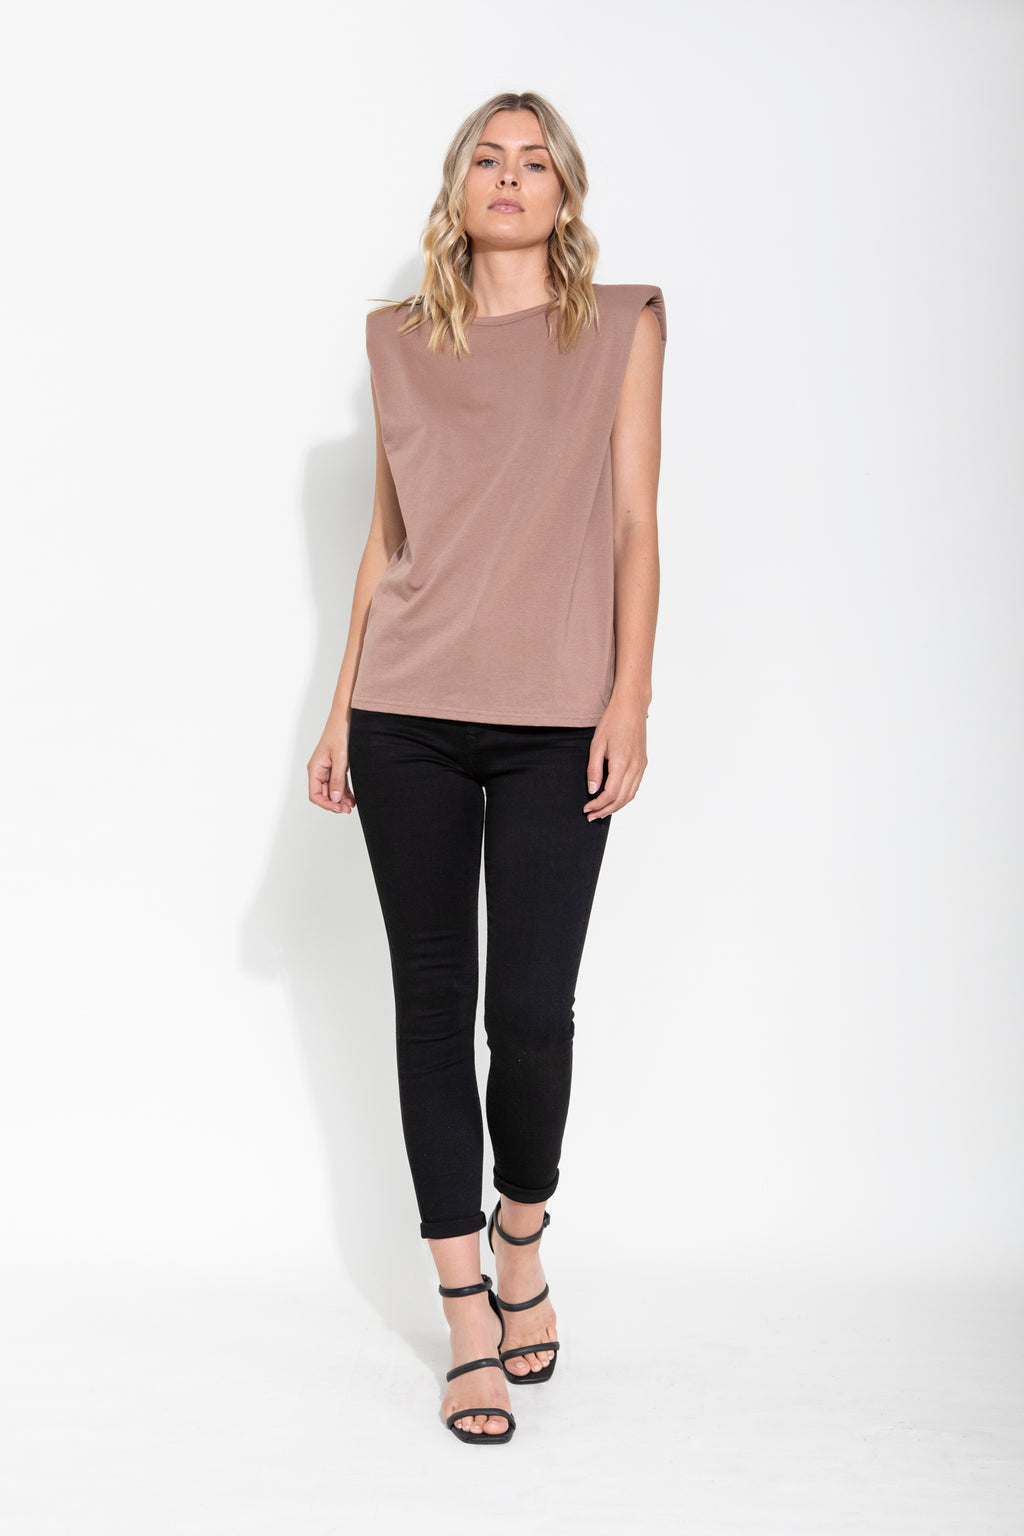 LIVIA PADDED SHOULDER TEE - NUDE